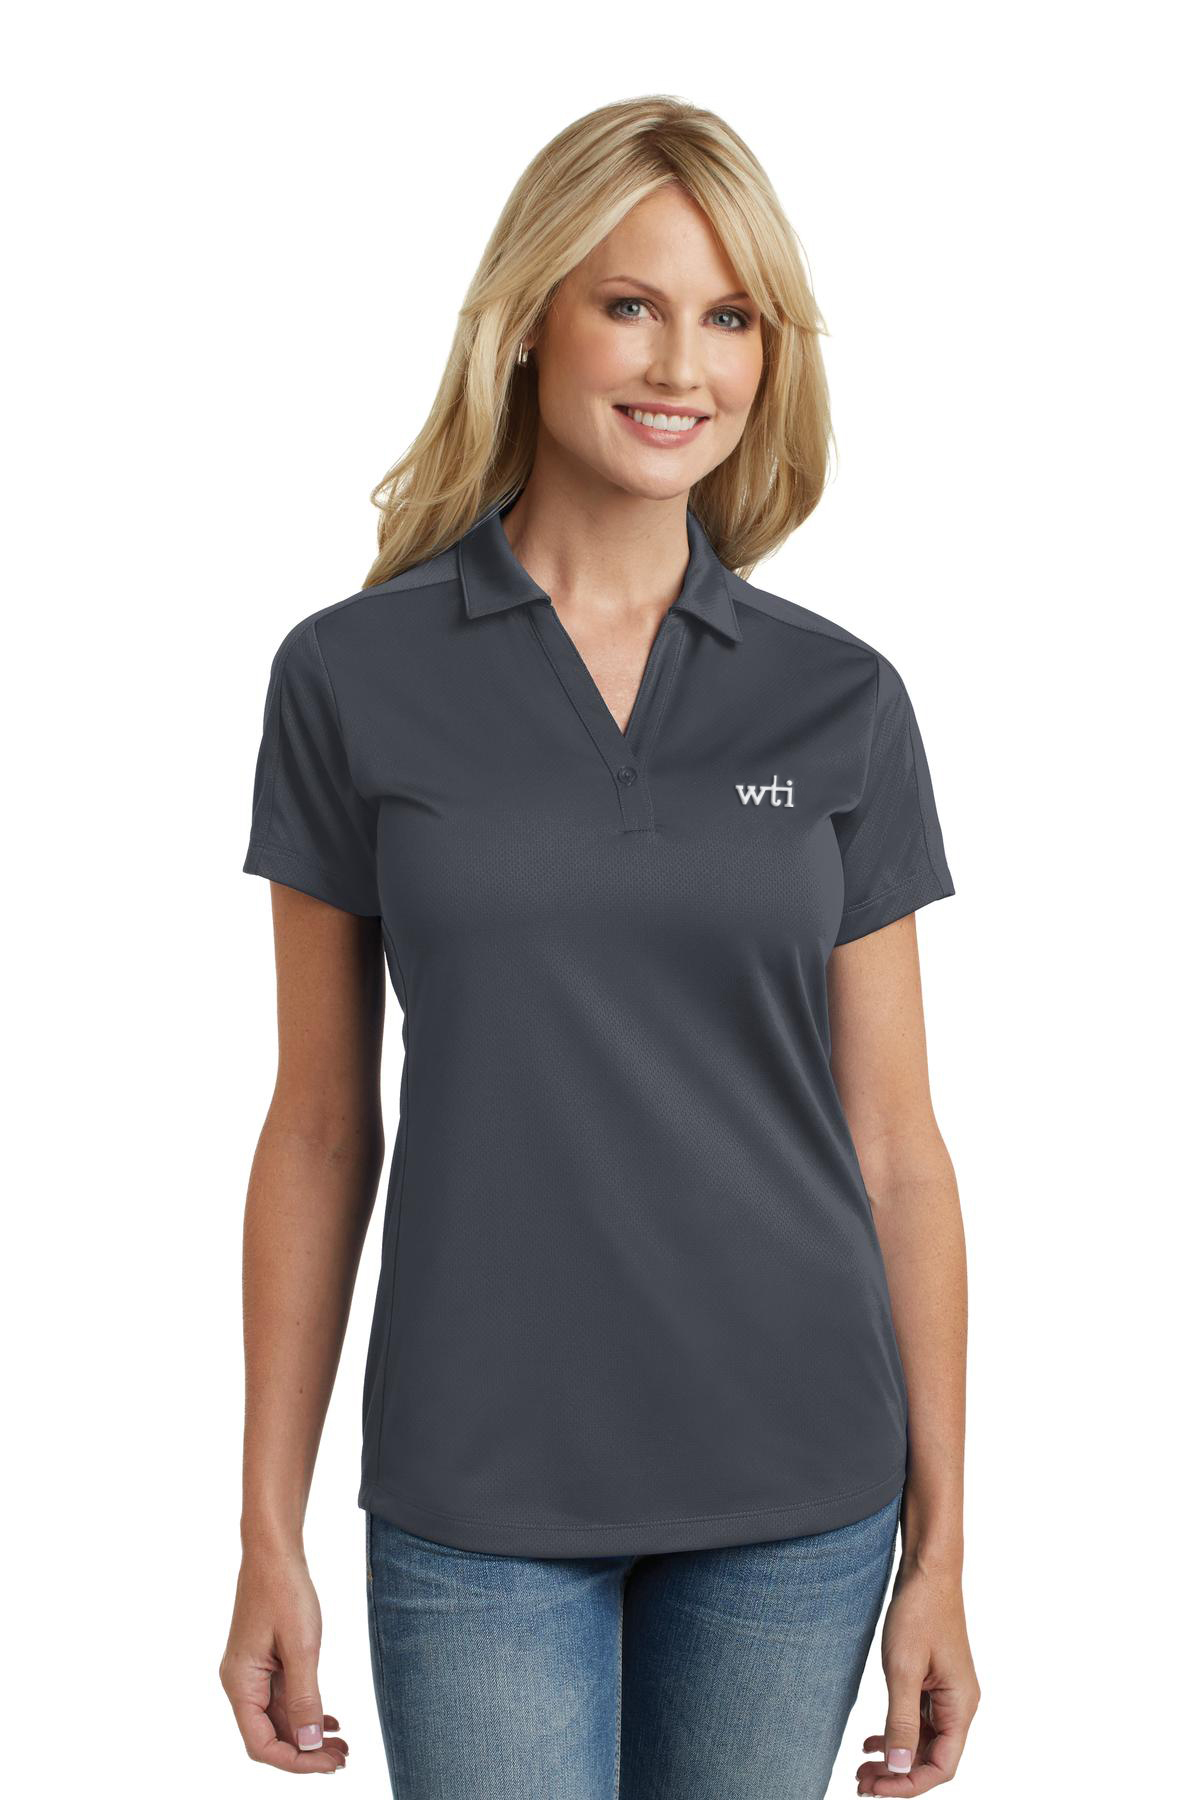 PA Ladies Diamond Jacquard Polo. L569. Prices Starting At $23!